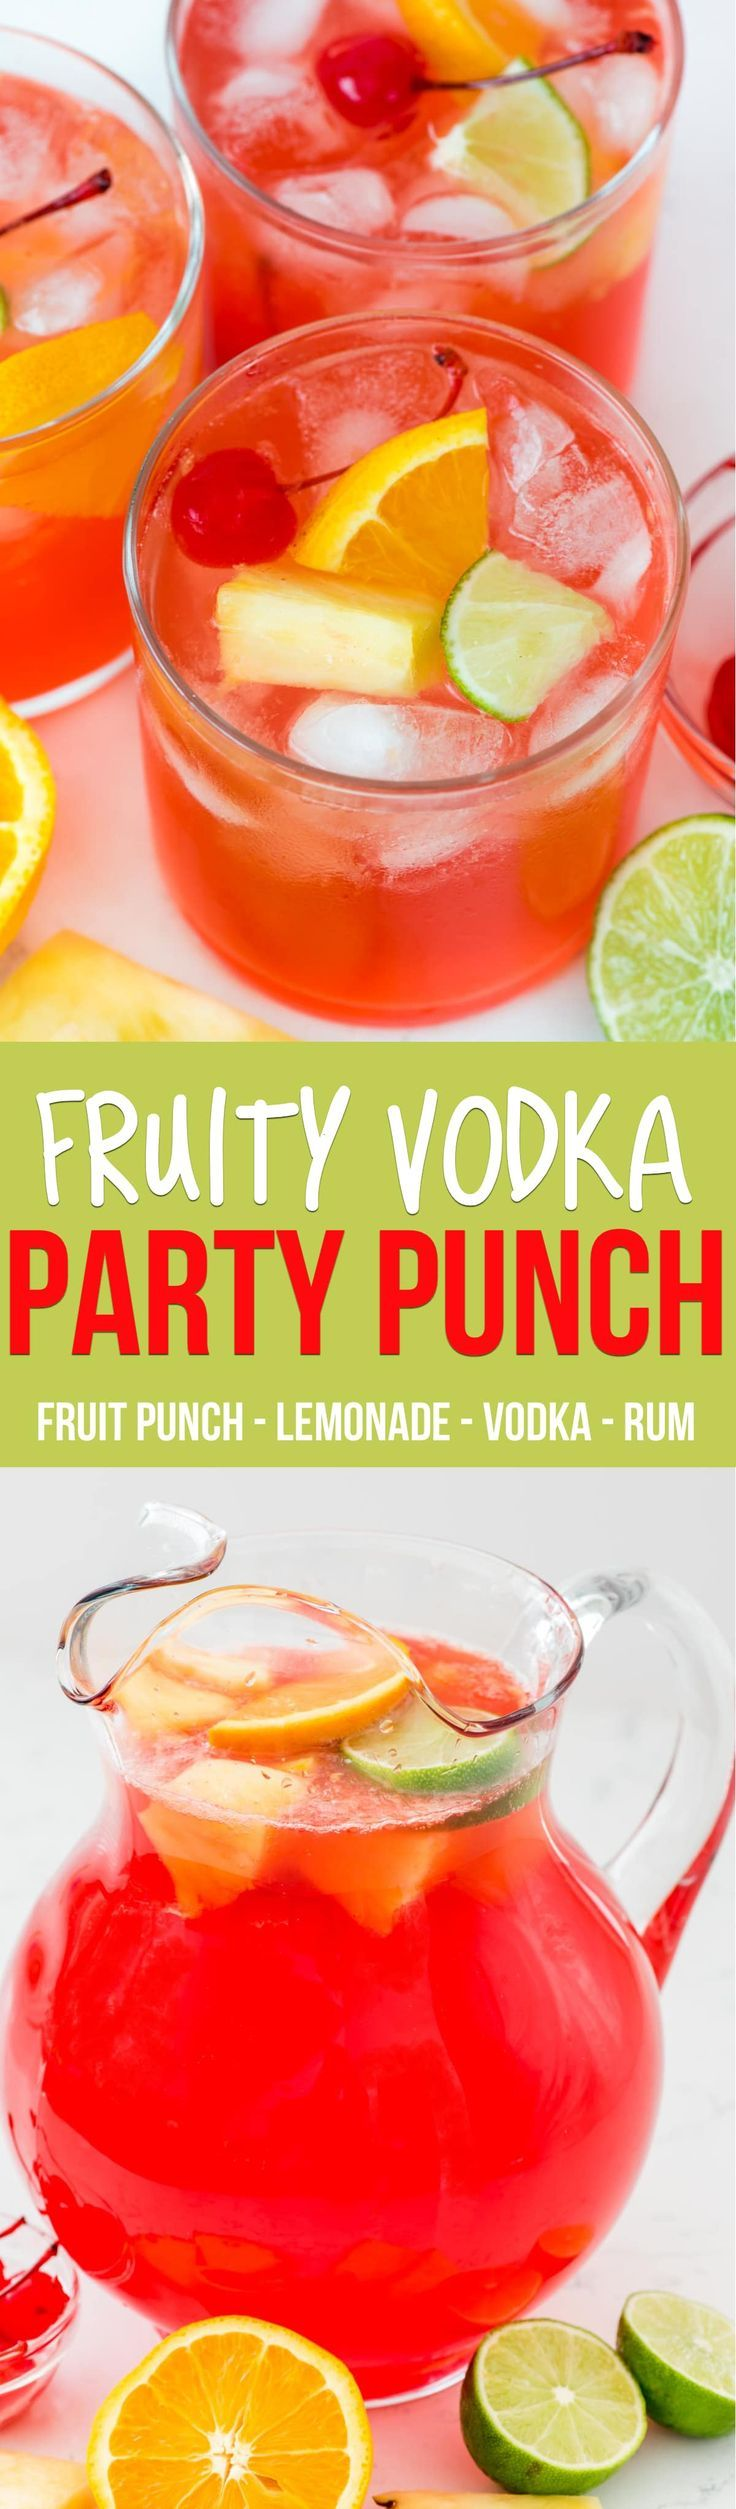 Fruity Vodka Party Punch is the perfect cocktail recipe for a party! This drink is full of lemonade and fruit punch, rum, and vodka and is the perfect easy punch recipe. via @crazyforcrust